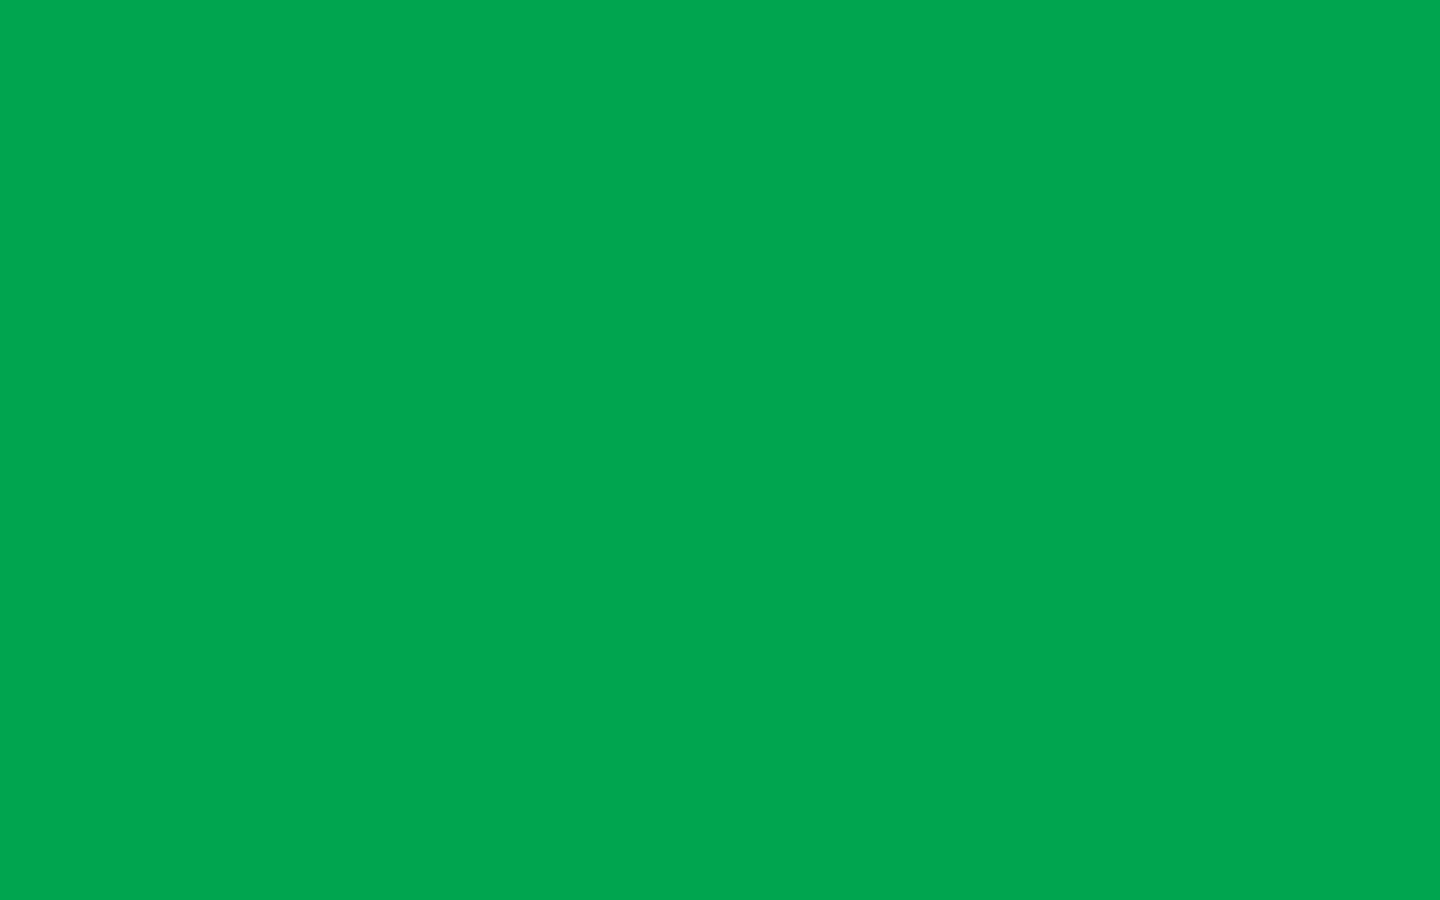 1440x900 Green Pigment Solid Color Background